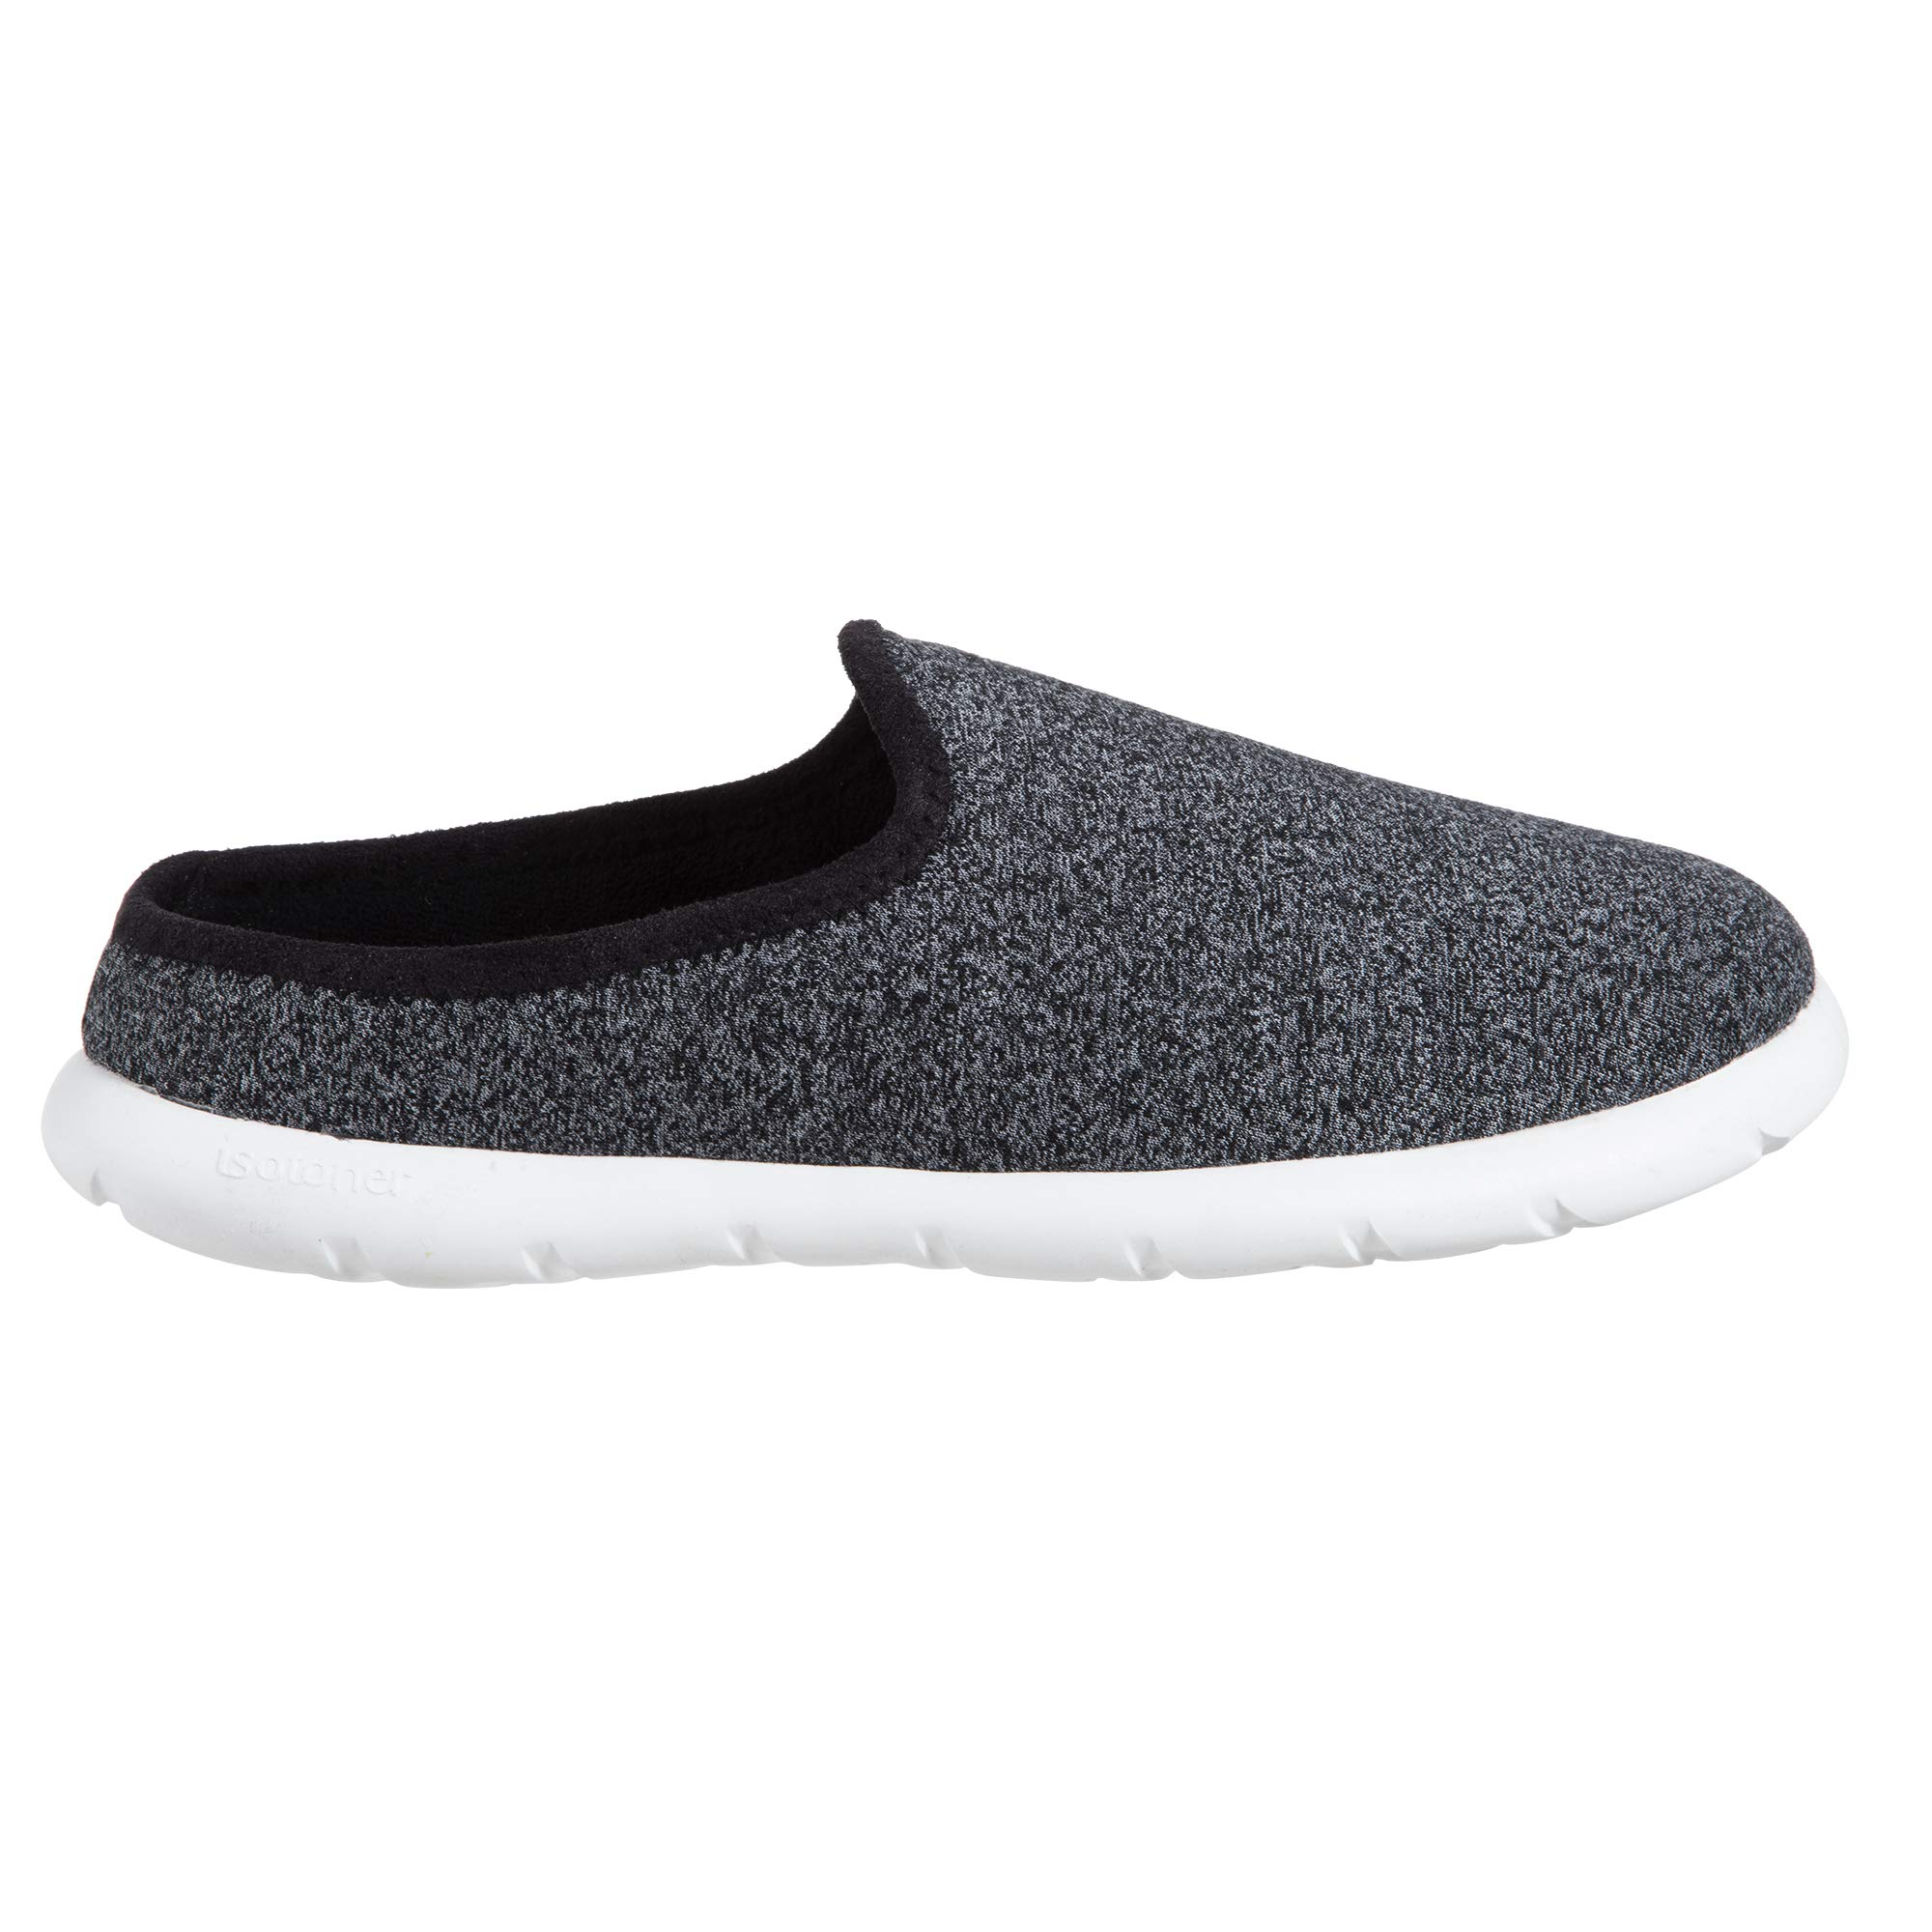 Zenz Men's Transition Heather Knit Hoodback Slipper, Slip-On Shoe